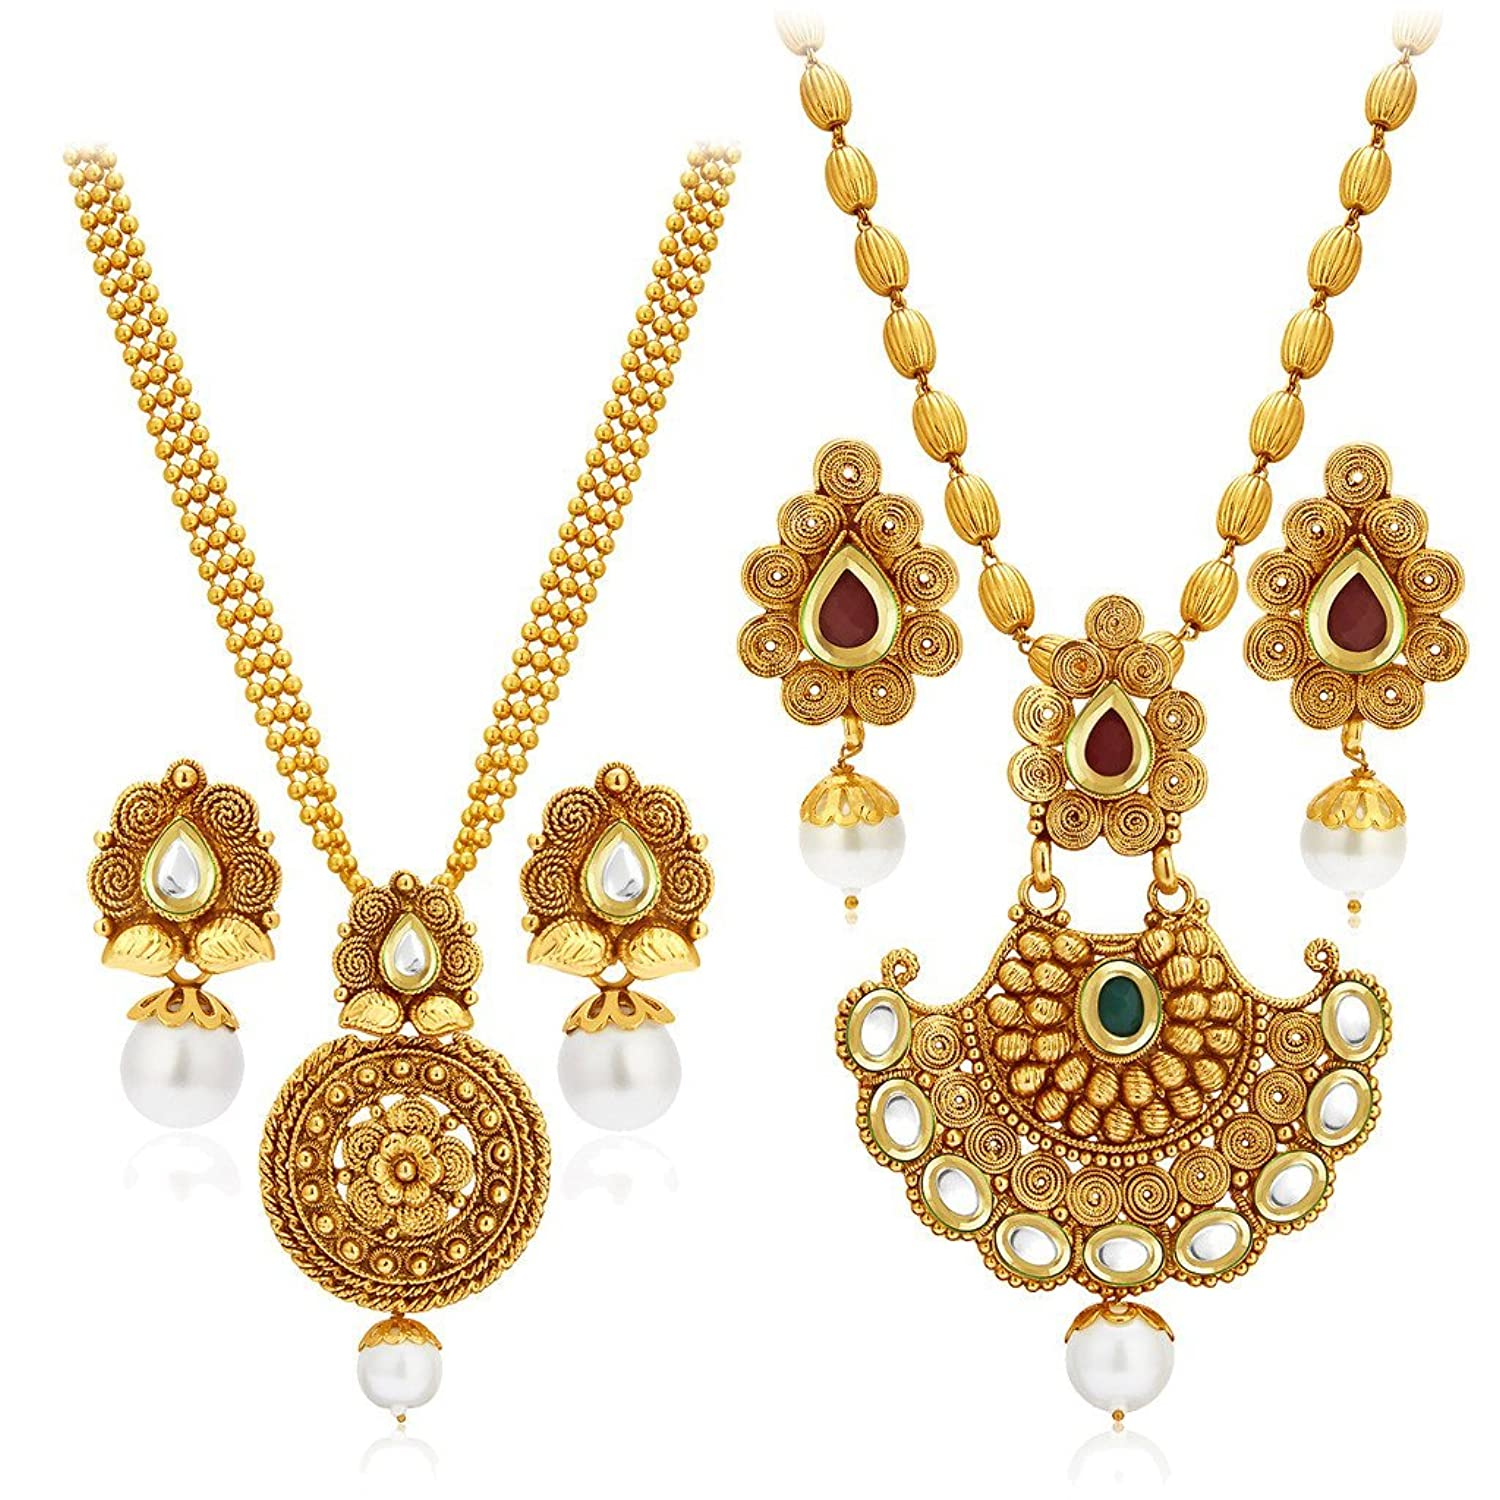 necklace jewelry weight bridal naj jewellery sets light indian from designs pin